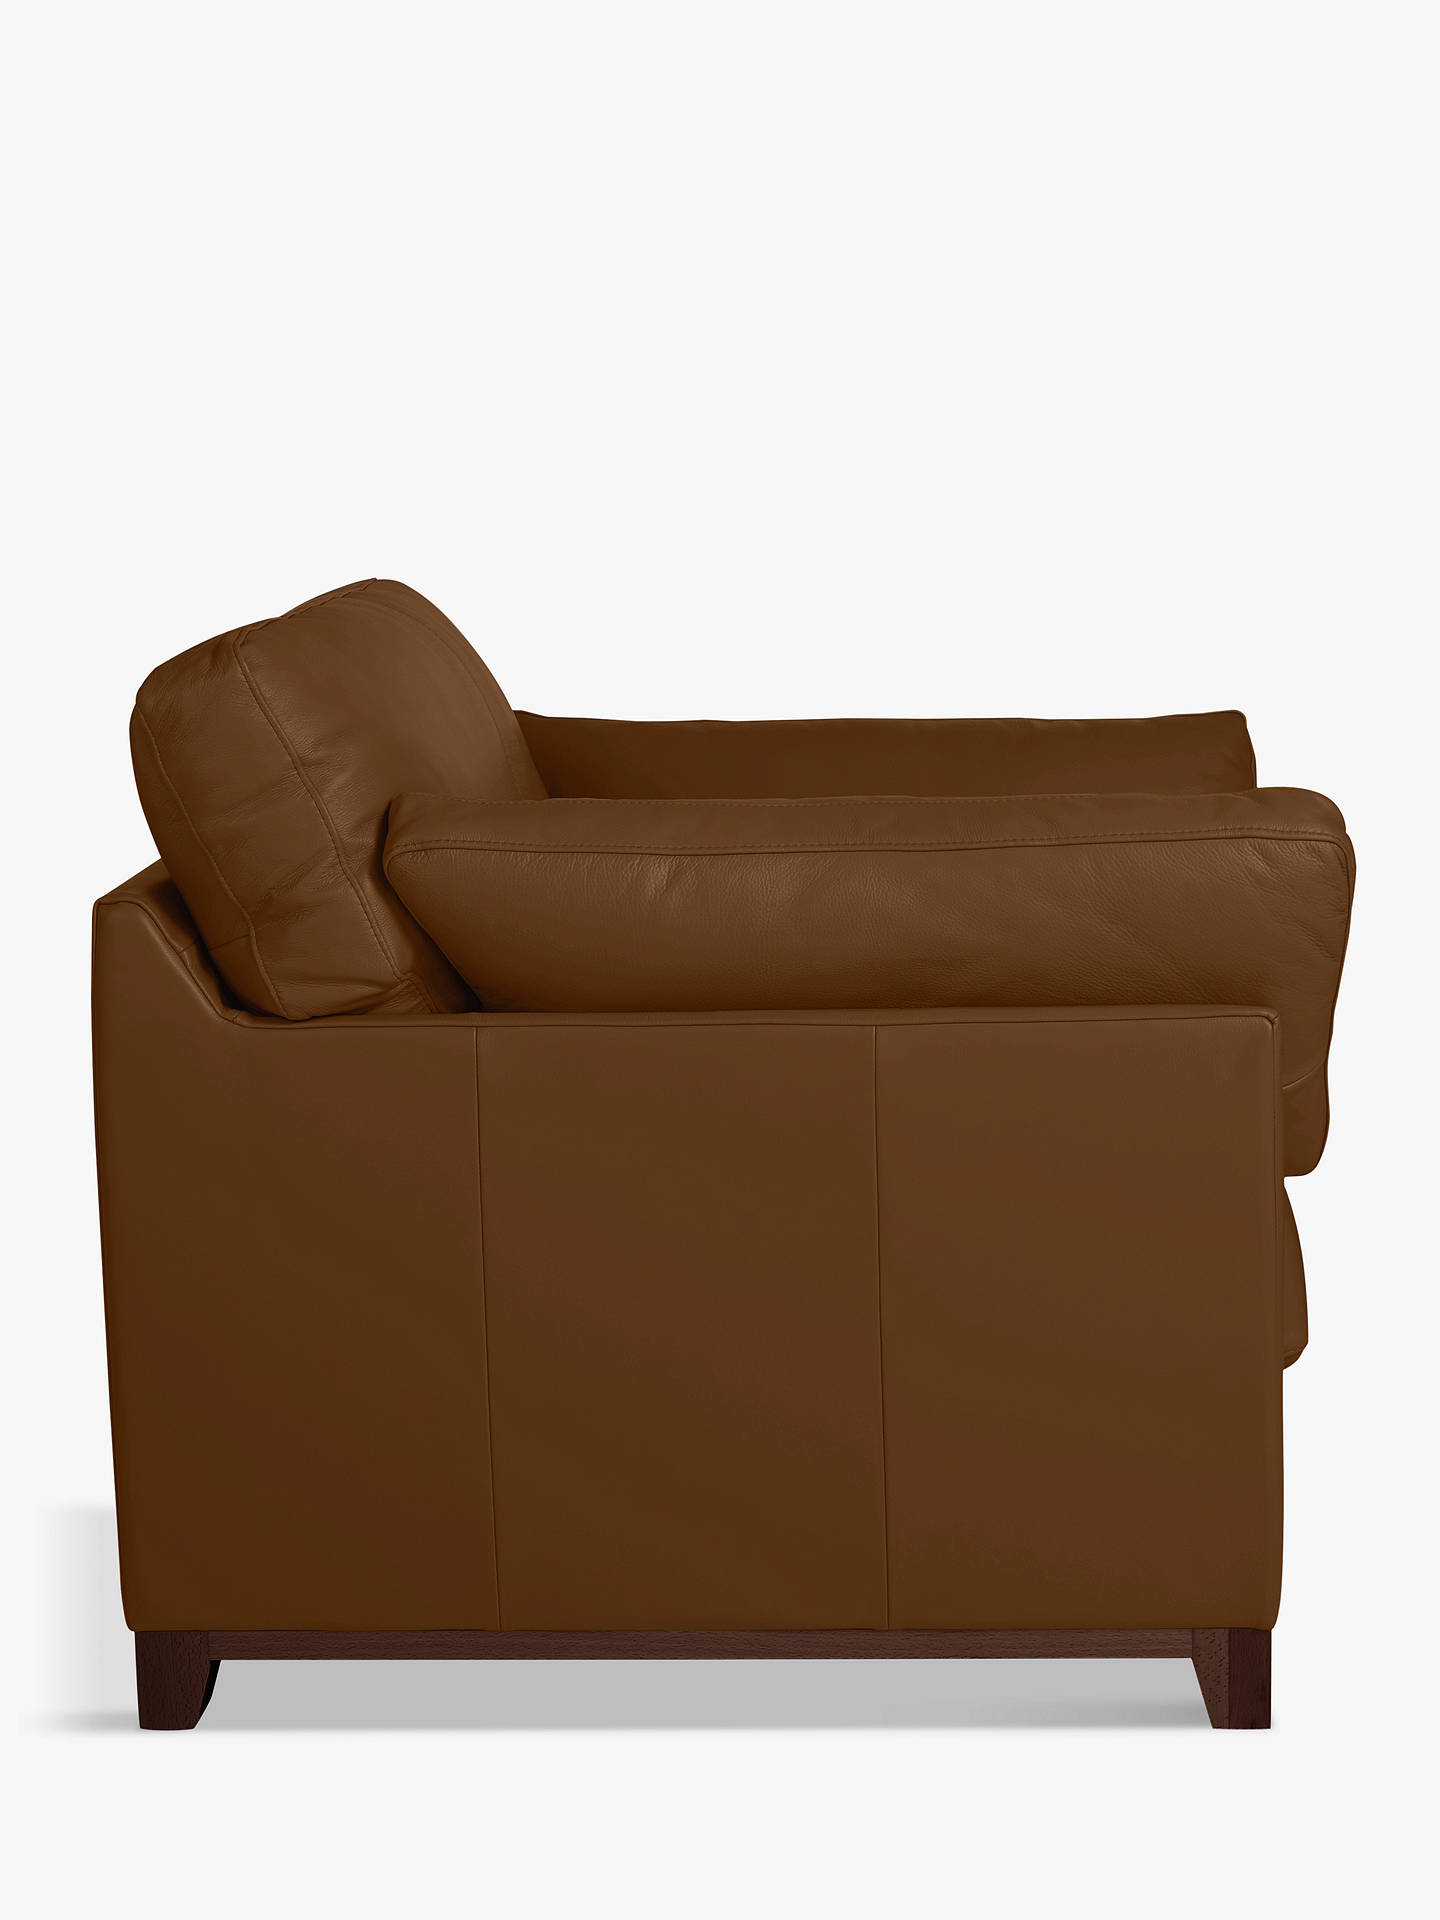 Buy John Lewis & Partners Ikon High Back Leather Snuggler, Dark Leg, Demetra Light Tan Online at johnlewis.com